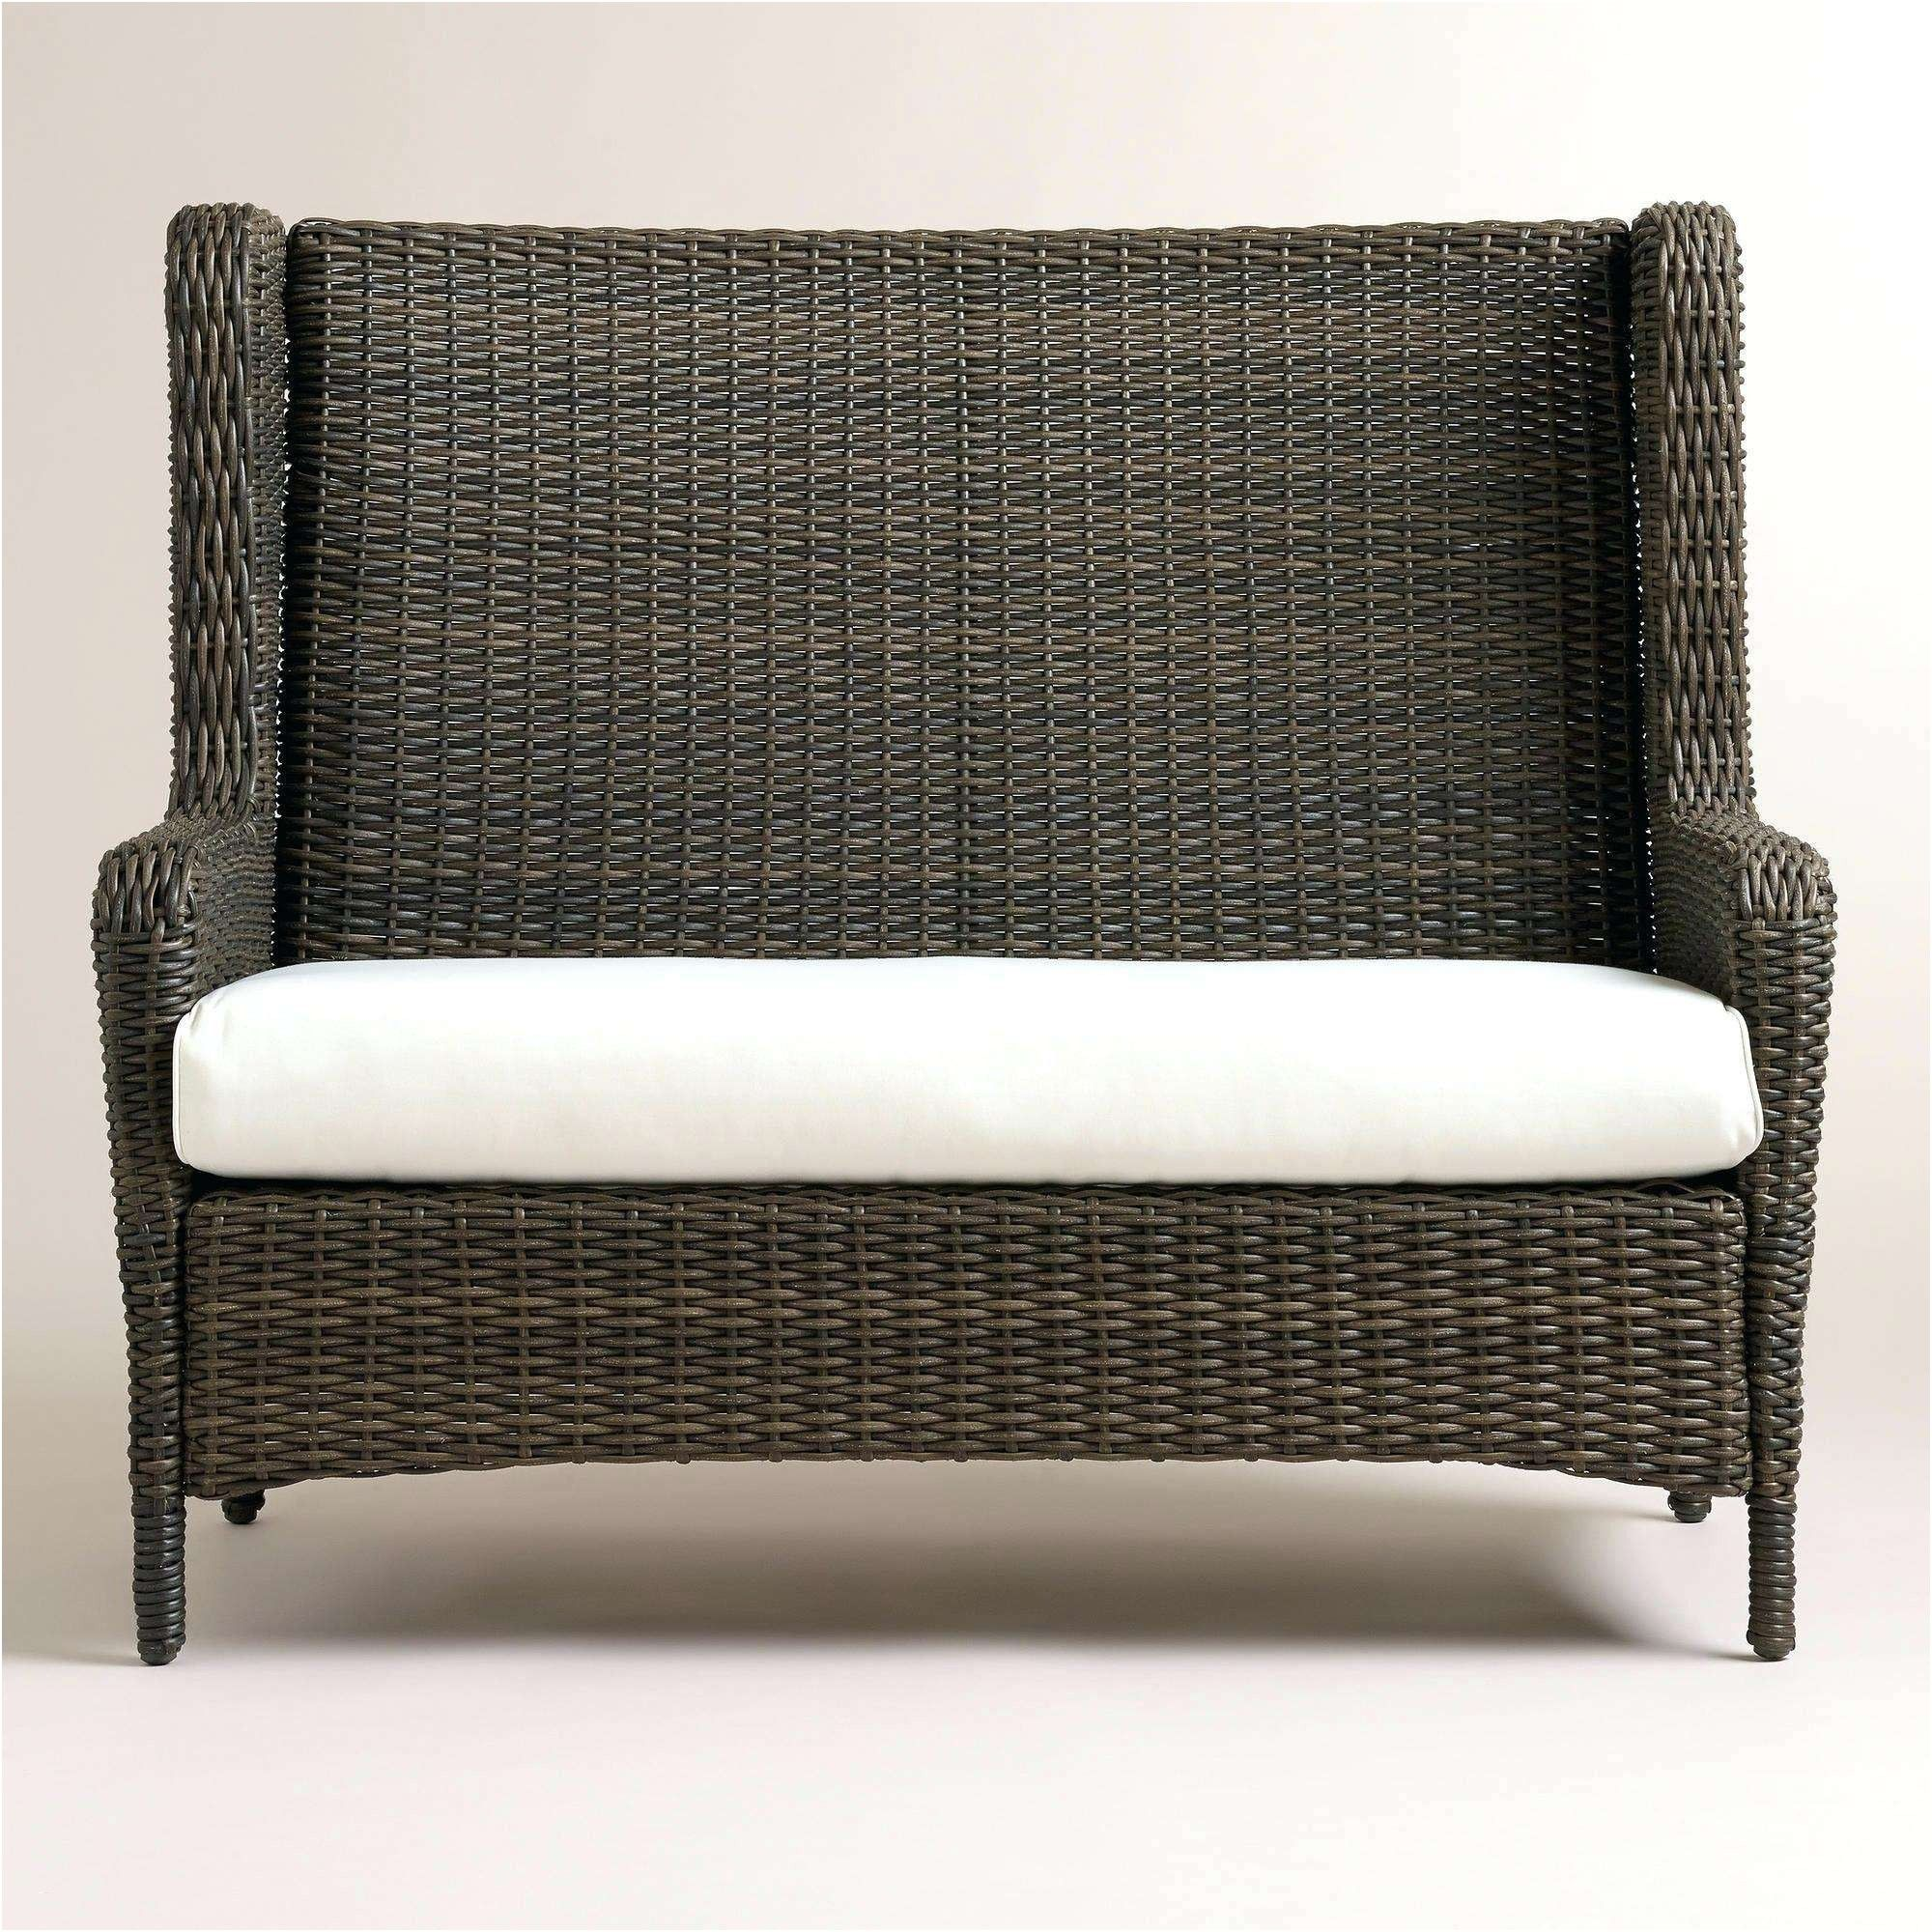 Pin By Jakee Rillo On Outdoor In 2020 Wood Patio Furniture Patio Cushions